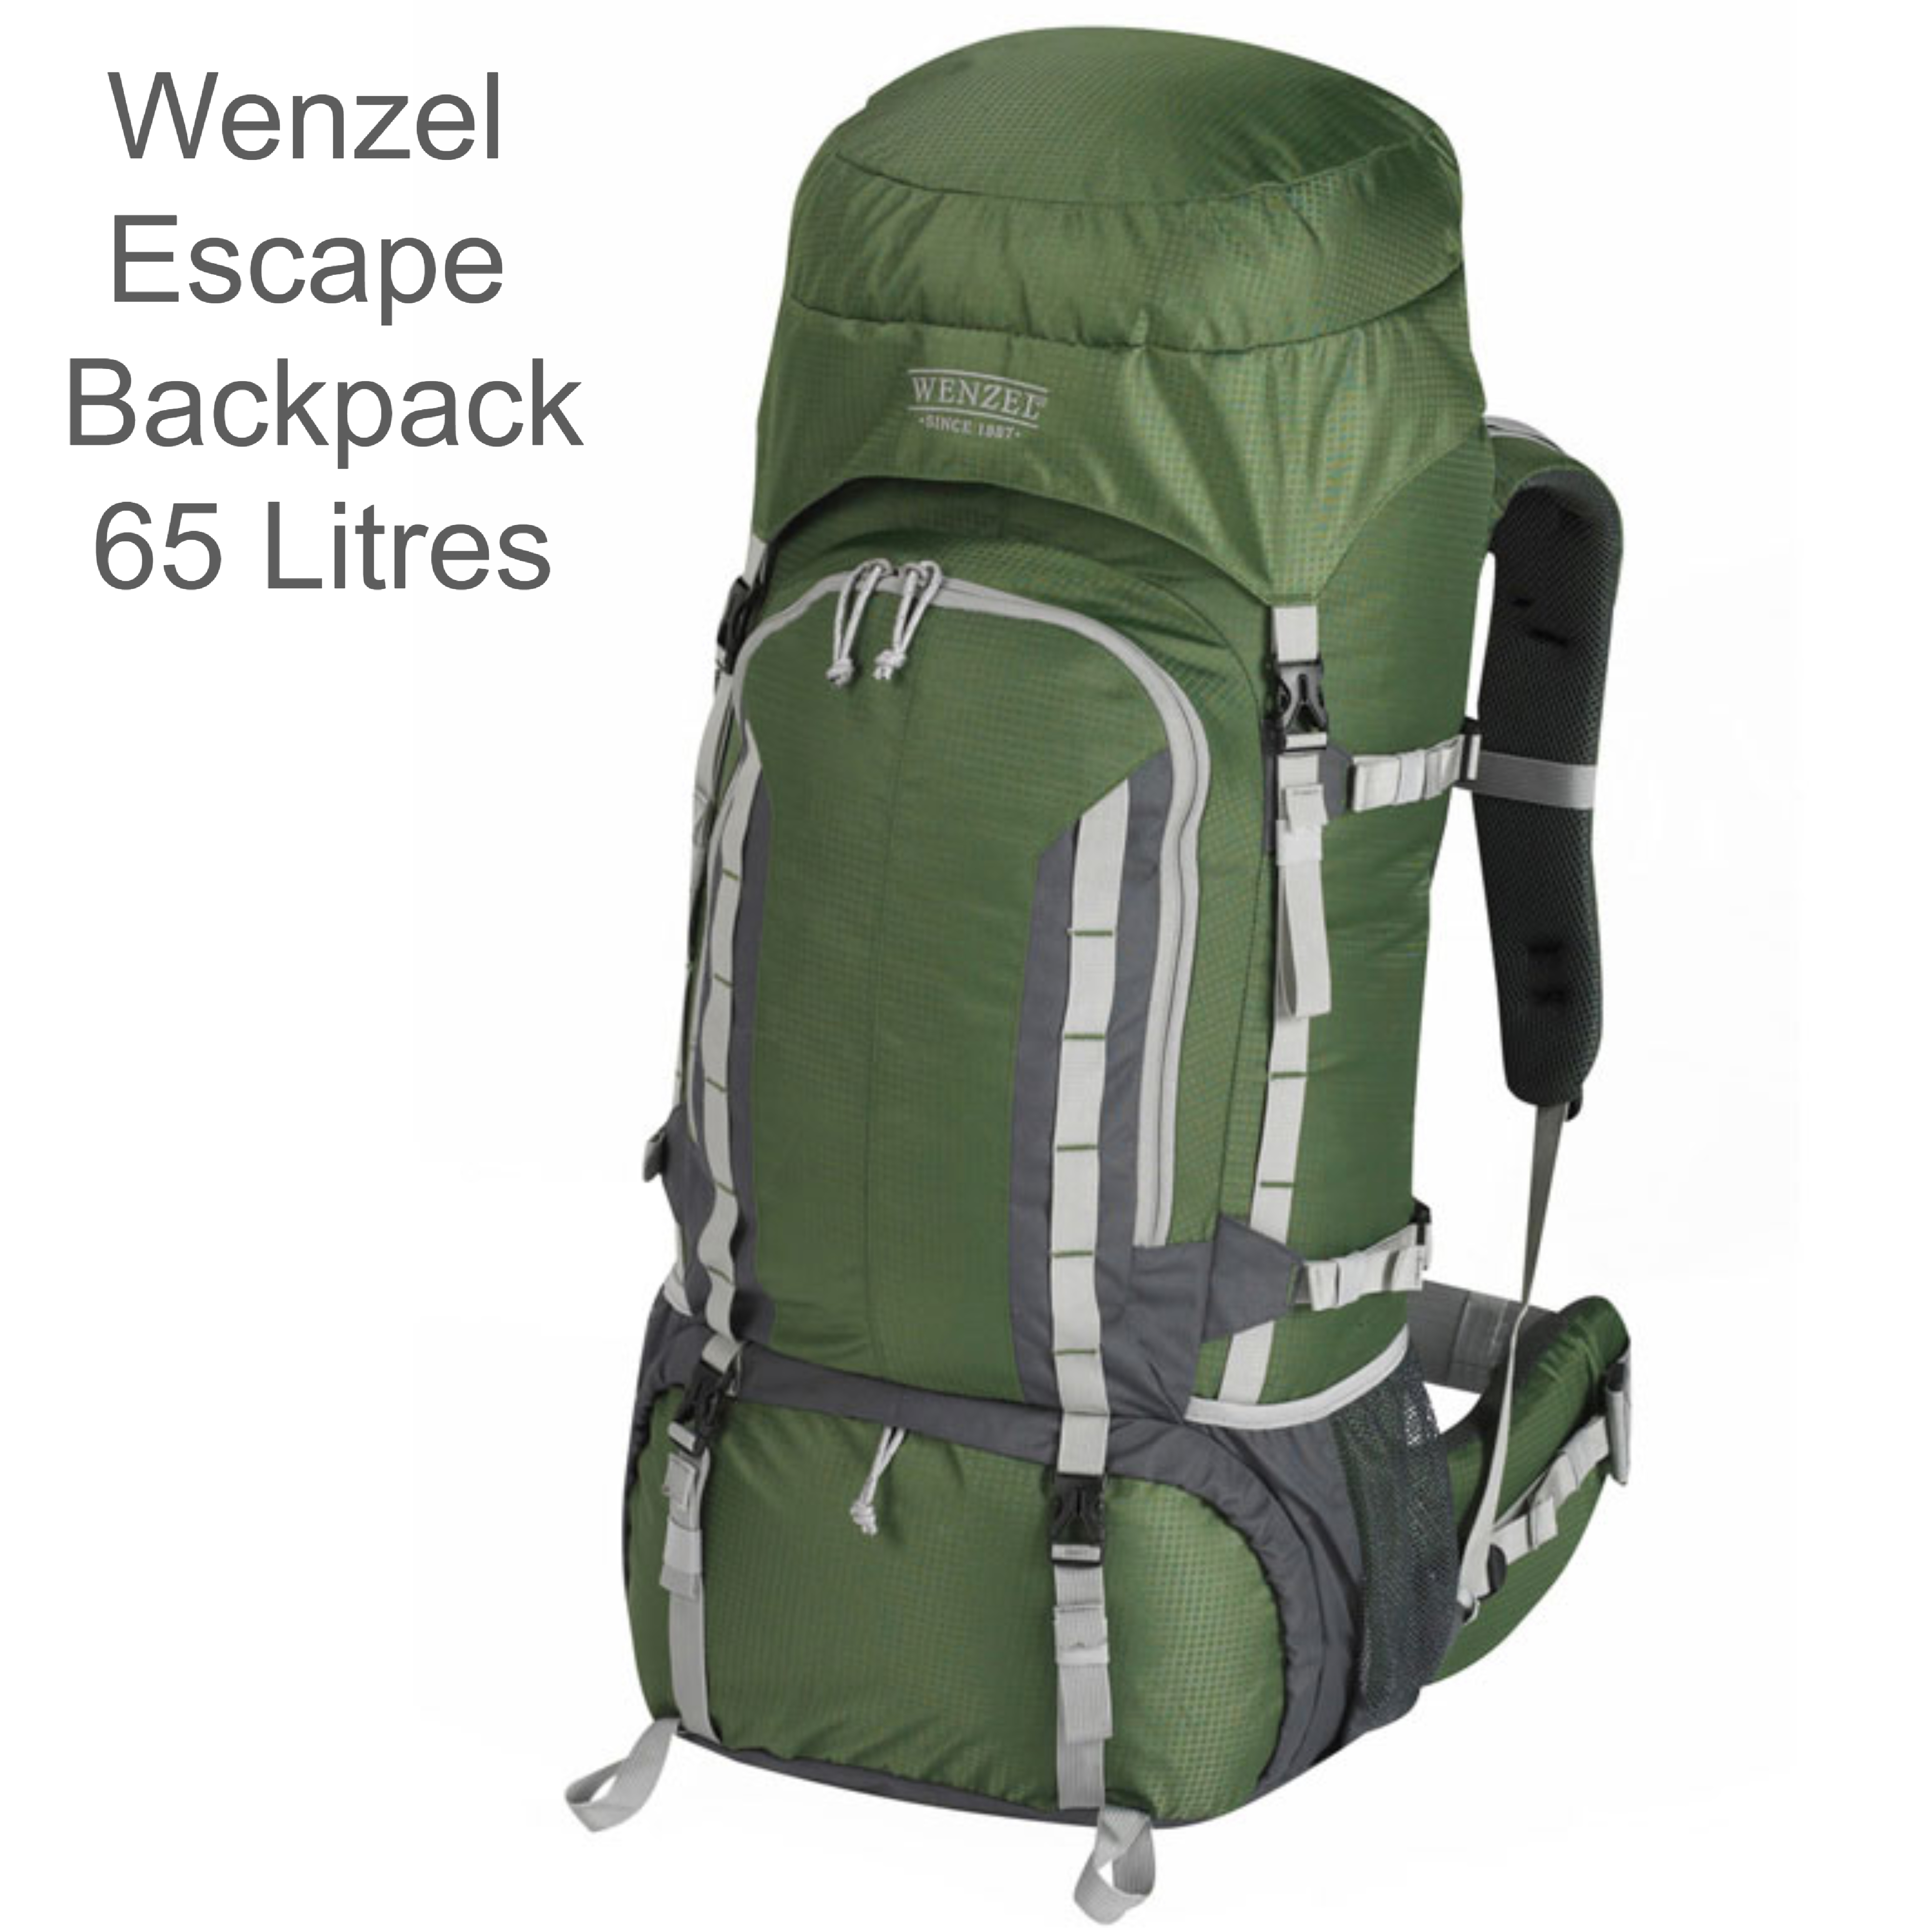 Wenzel Escape Backpack - 50 Litres - Forest Green?Polyster Carry Bag for Travellers